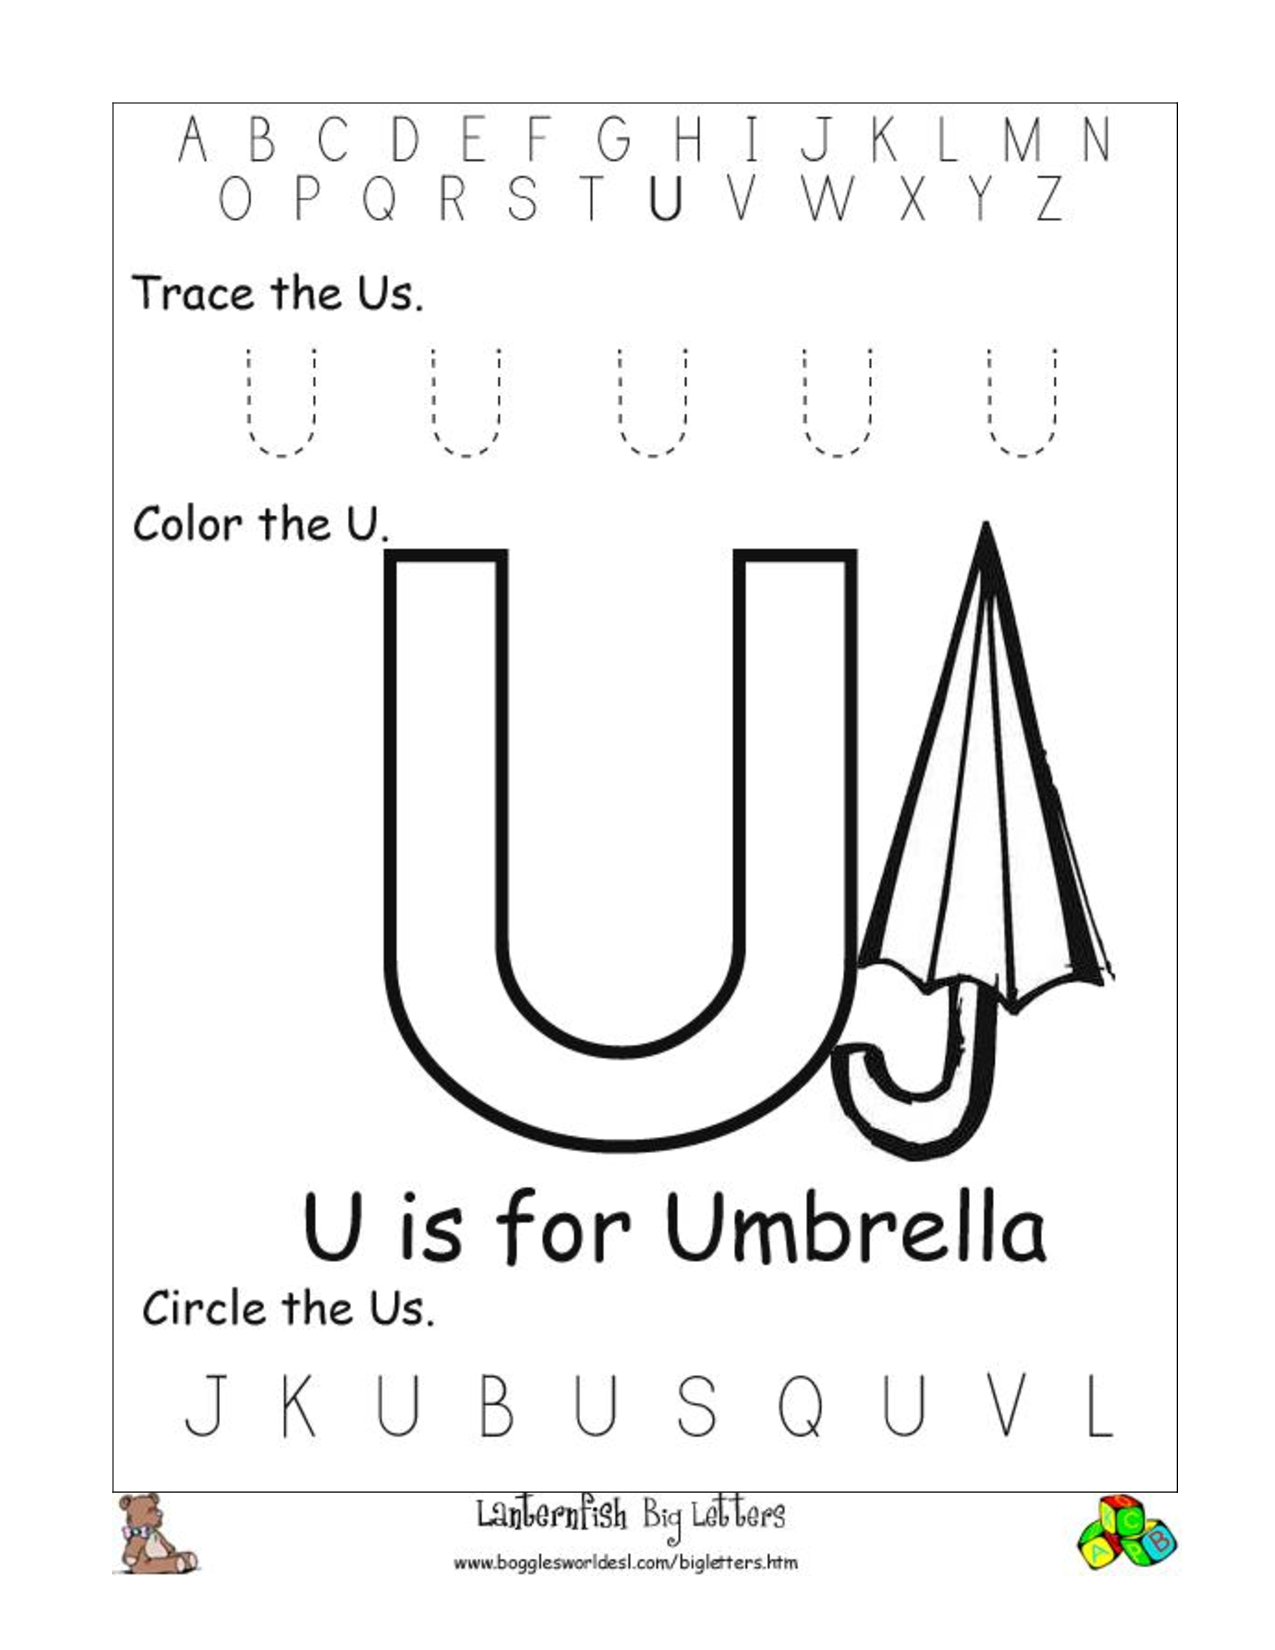 Alphabet Worksheet Big Letter U - Download Now Doc with regard to Letter U Tracing Sheet